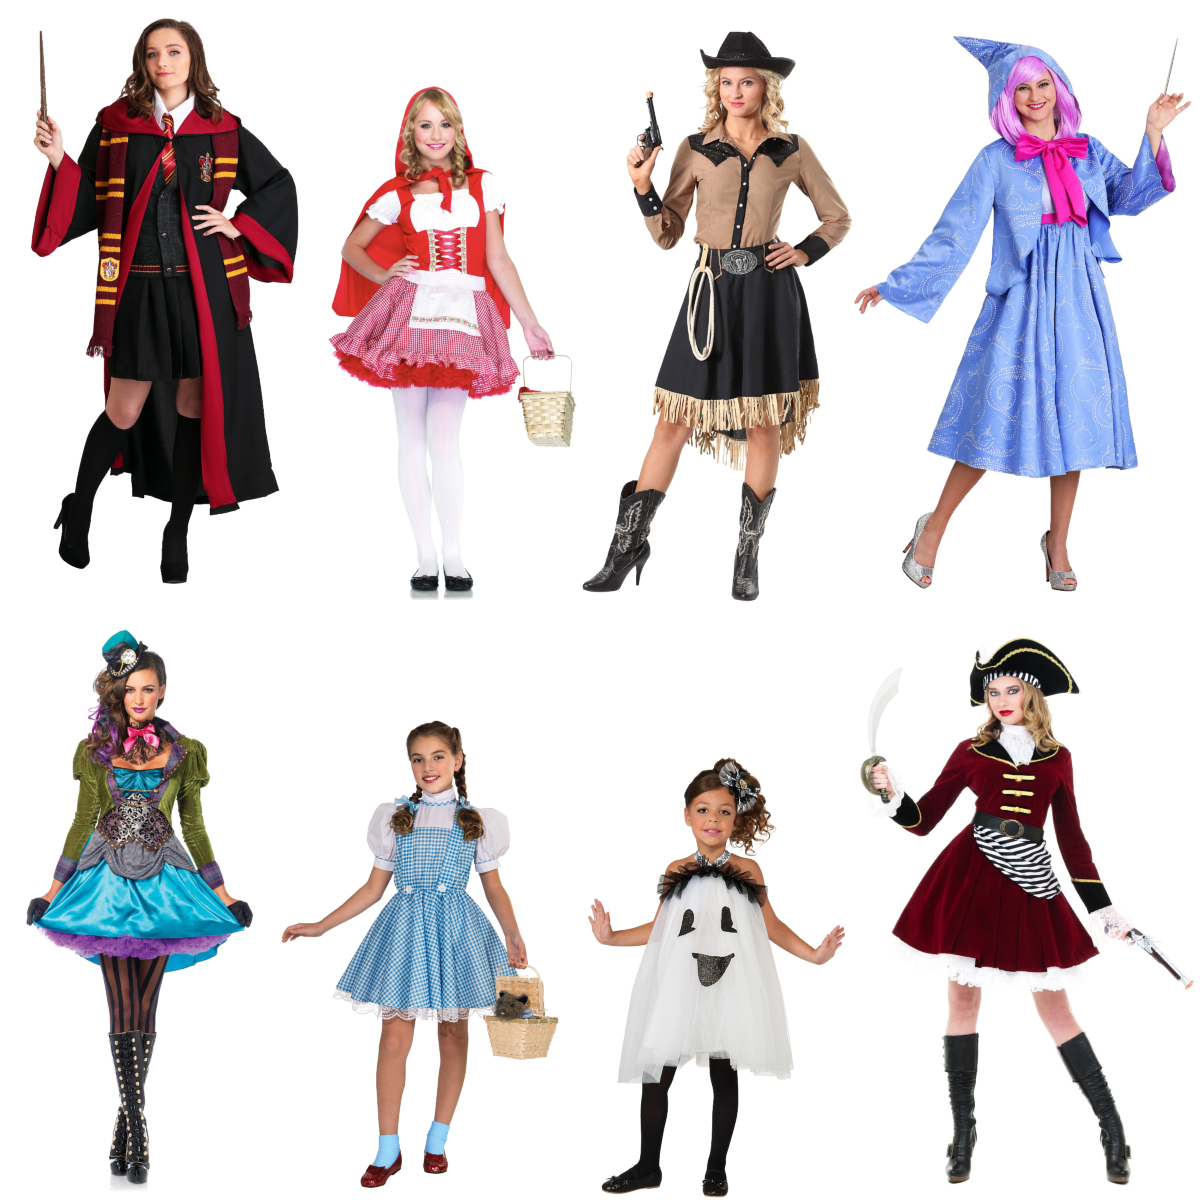 Costumes with Skirts to Twirl In